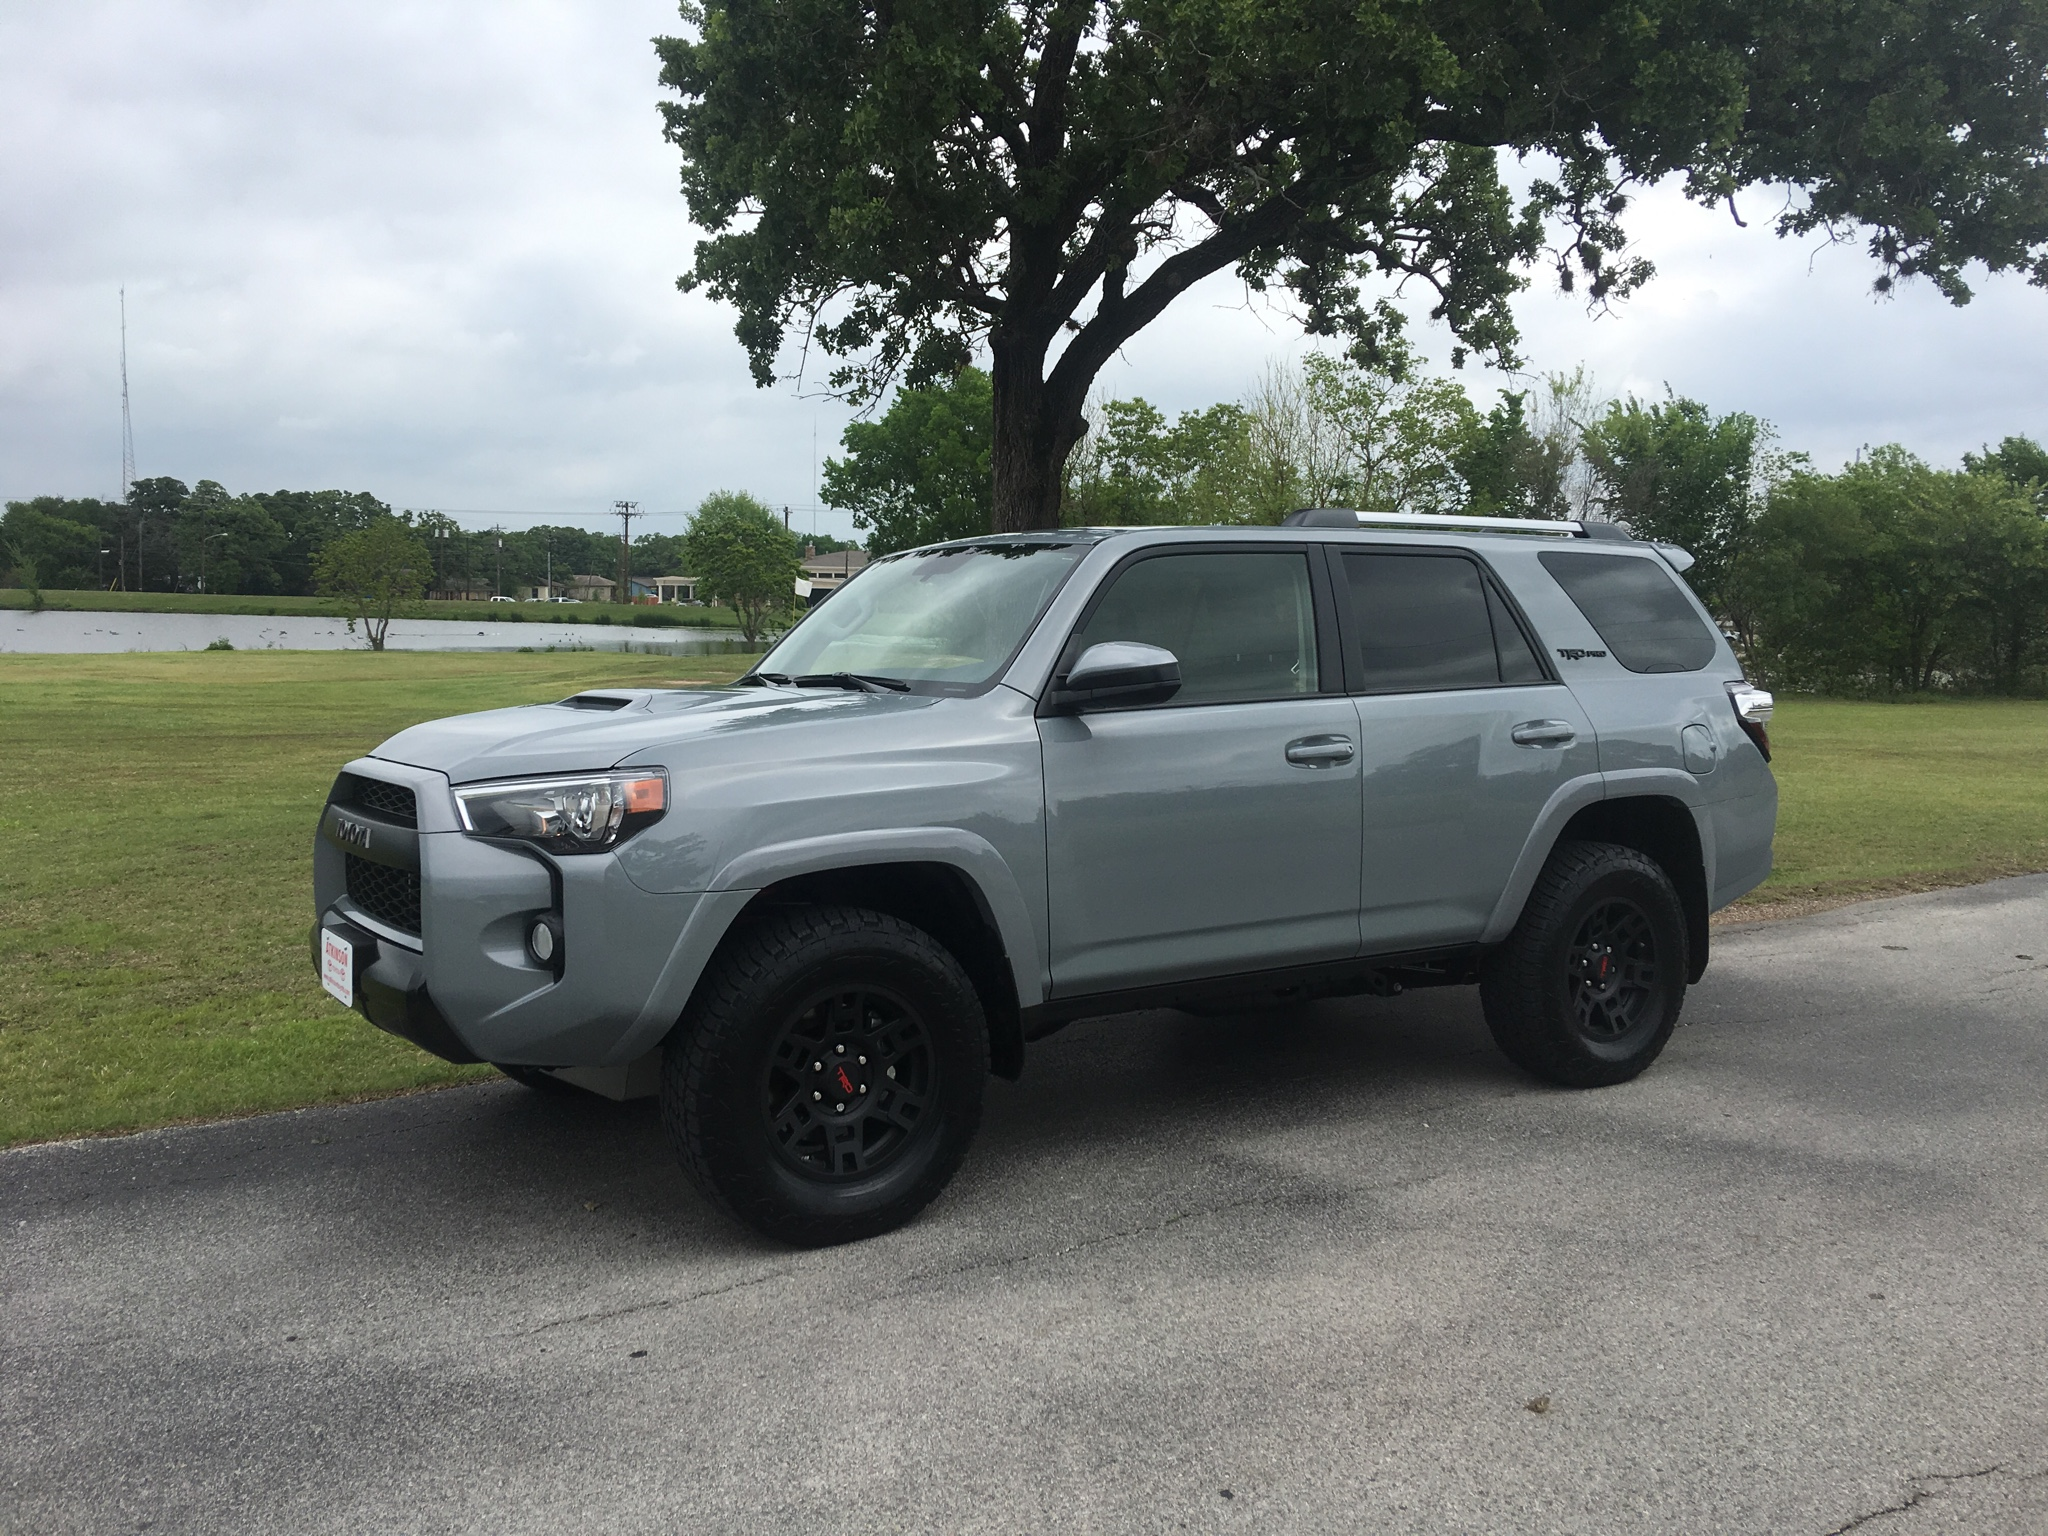 4runner trd pro page 560 toyota 4runner forum largest 4runner forum. Black Bedroom Furniture Sets. Home Design Ideas